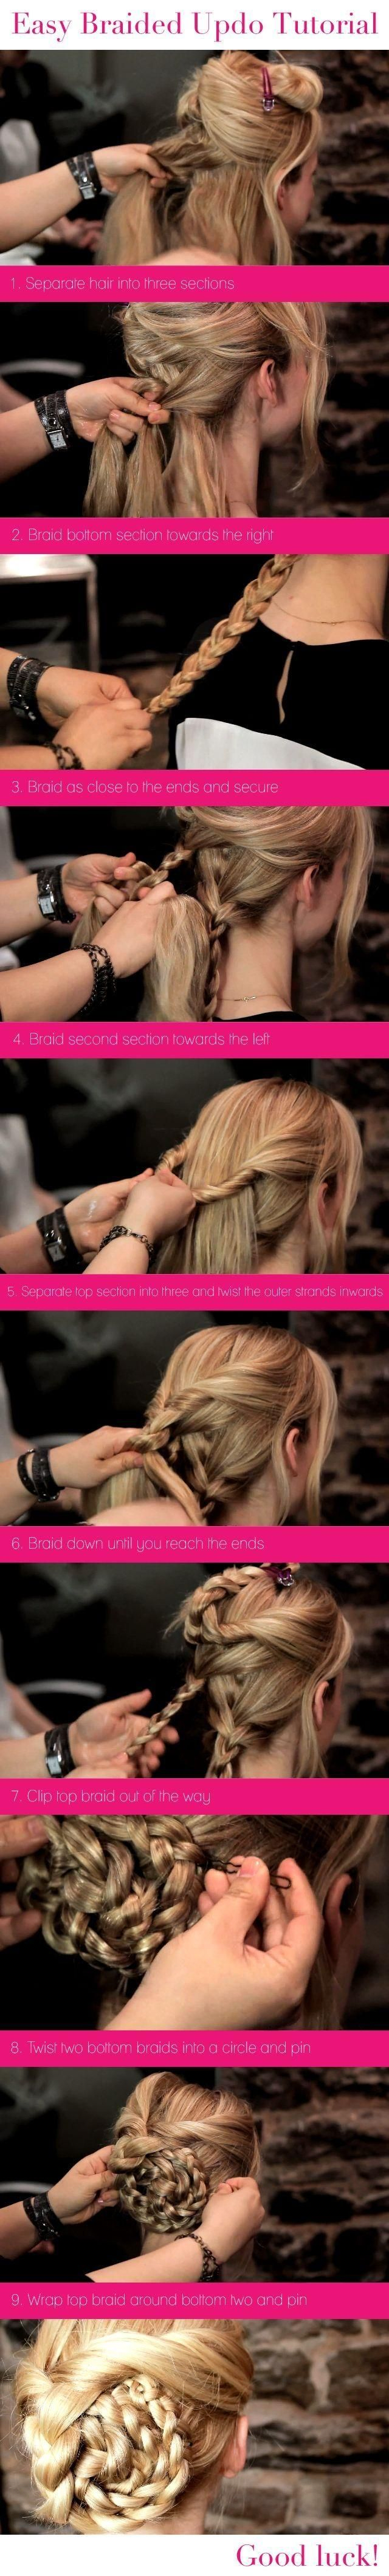 DIY Braided Updo Pictures, Photos, and Images for Facebook, Tumblr, Pinterest, and Twitter